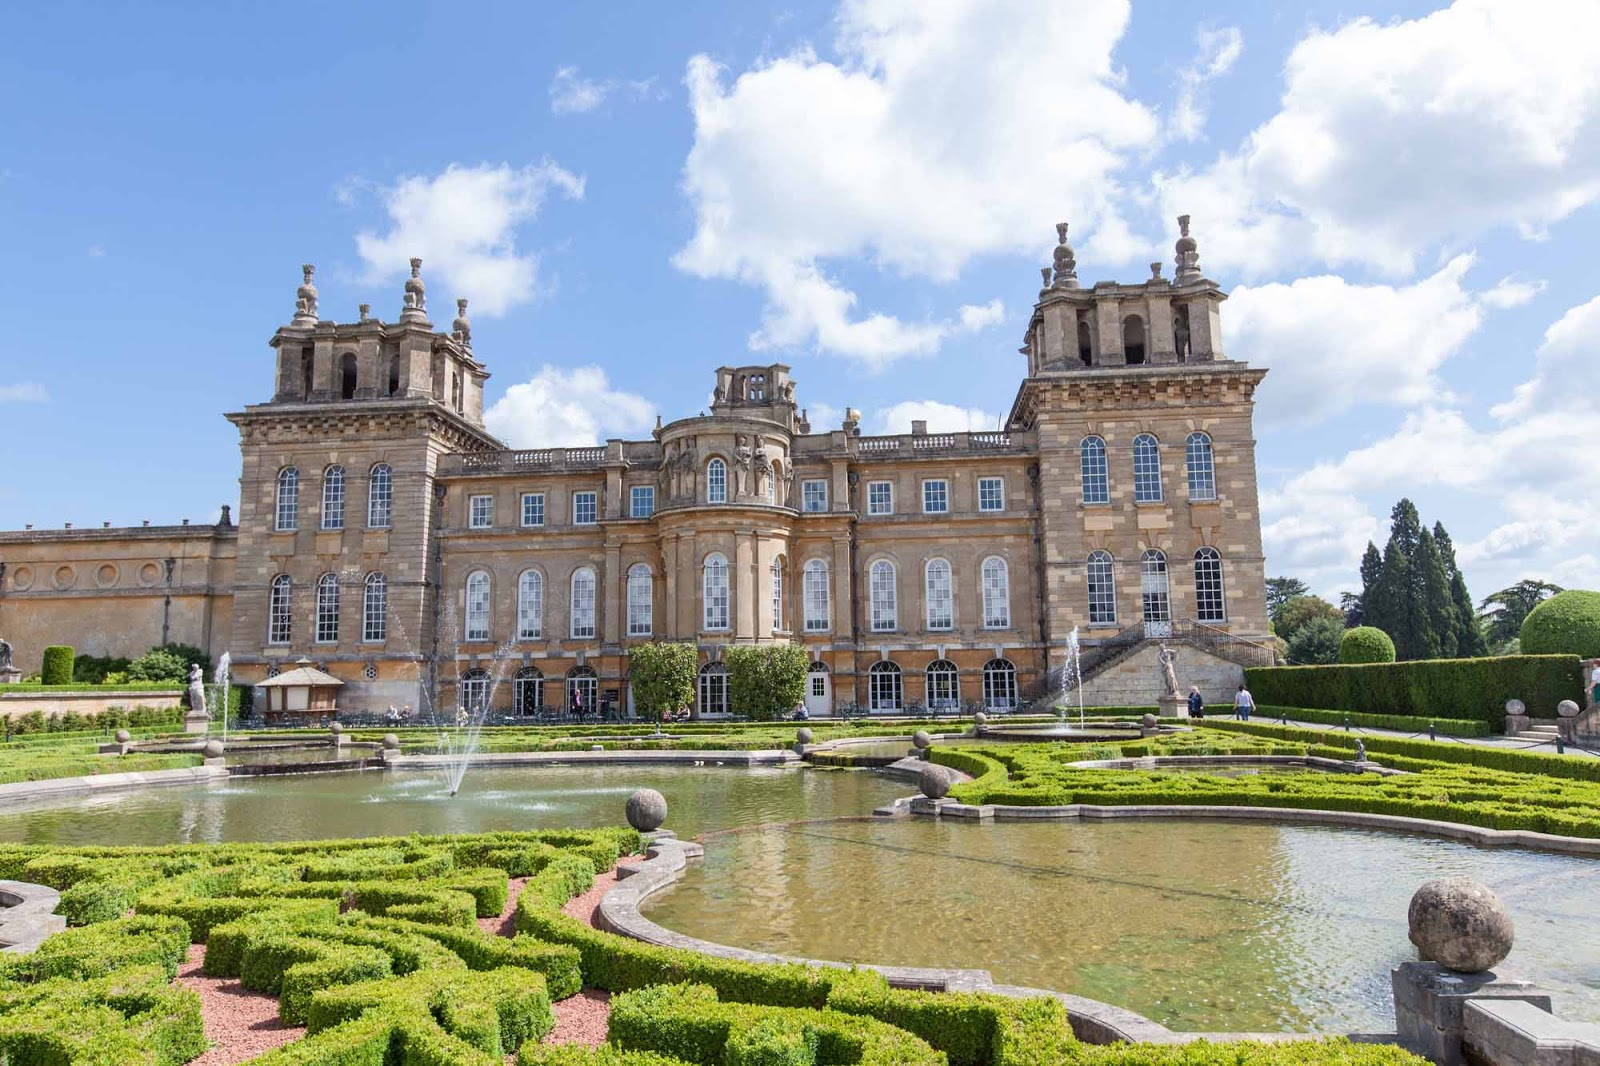 Blenheim palace the heart thrills for Best new england wedding venues